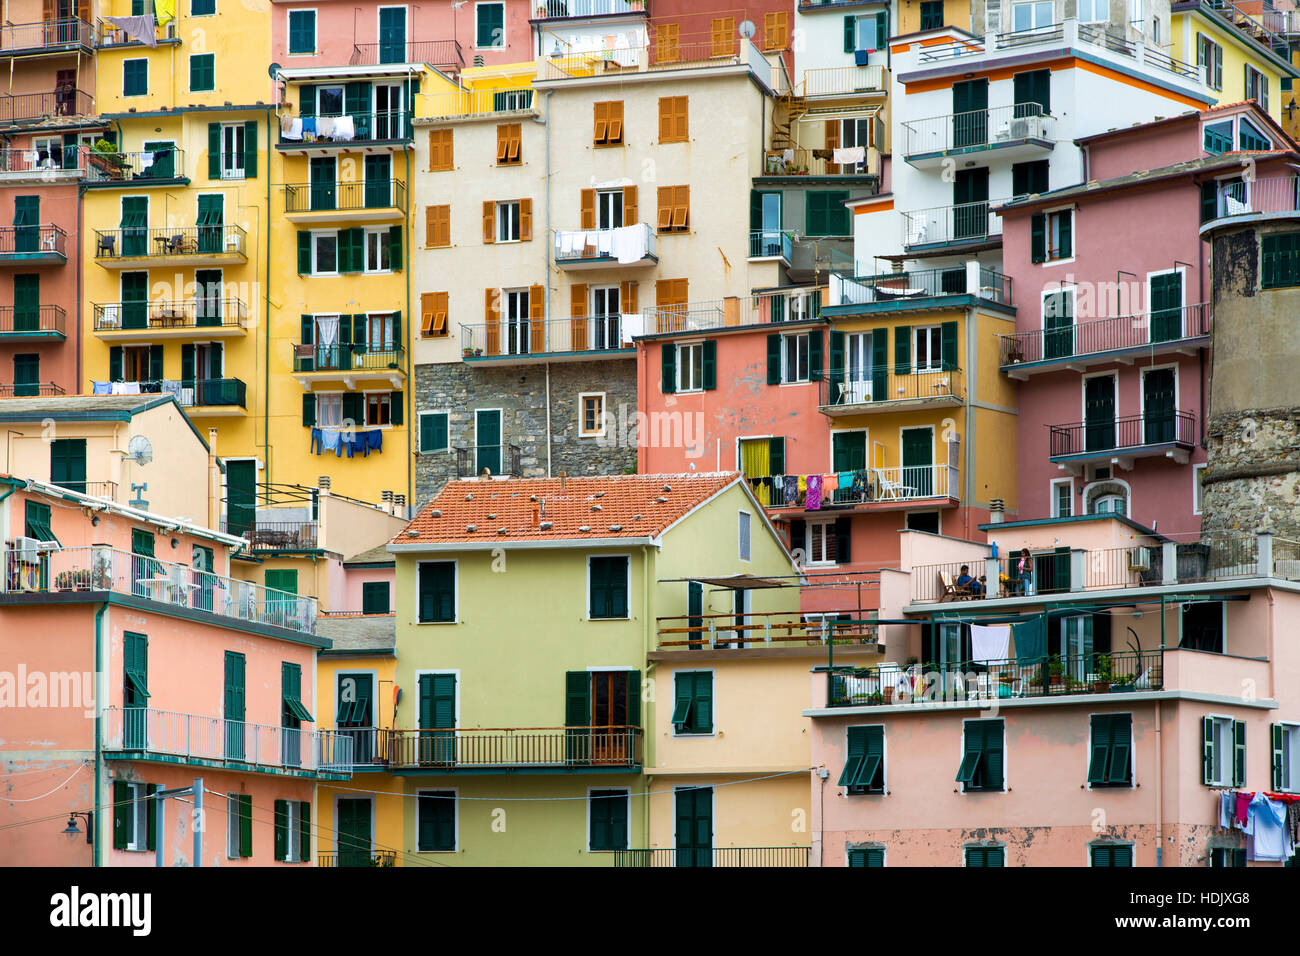 Maison à Vernazza, Cinque Terre, ligurie, italie Photo Stock